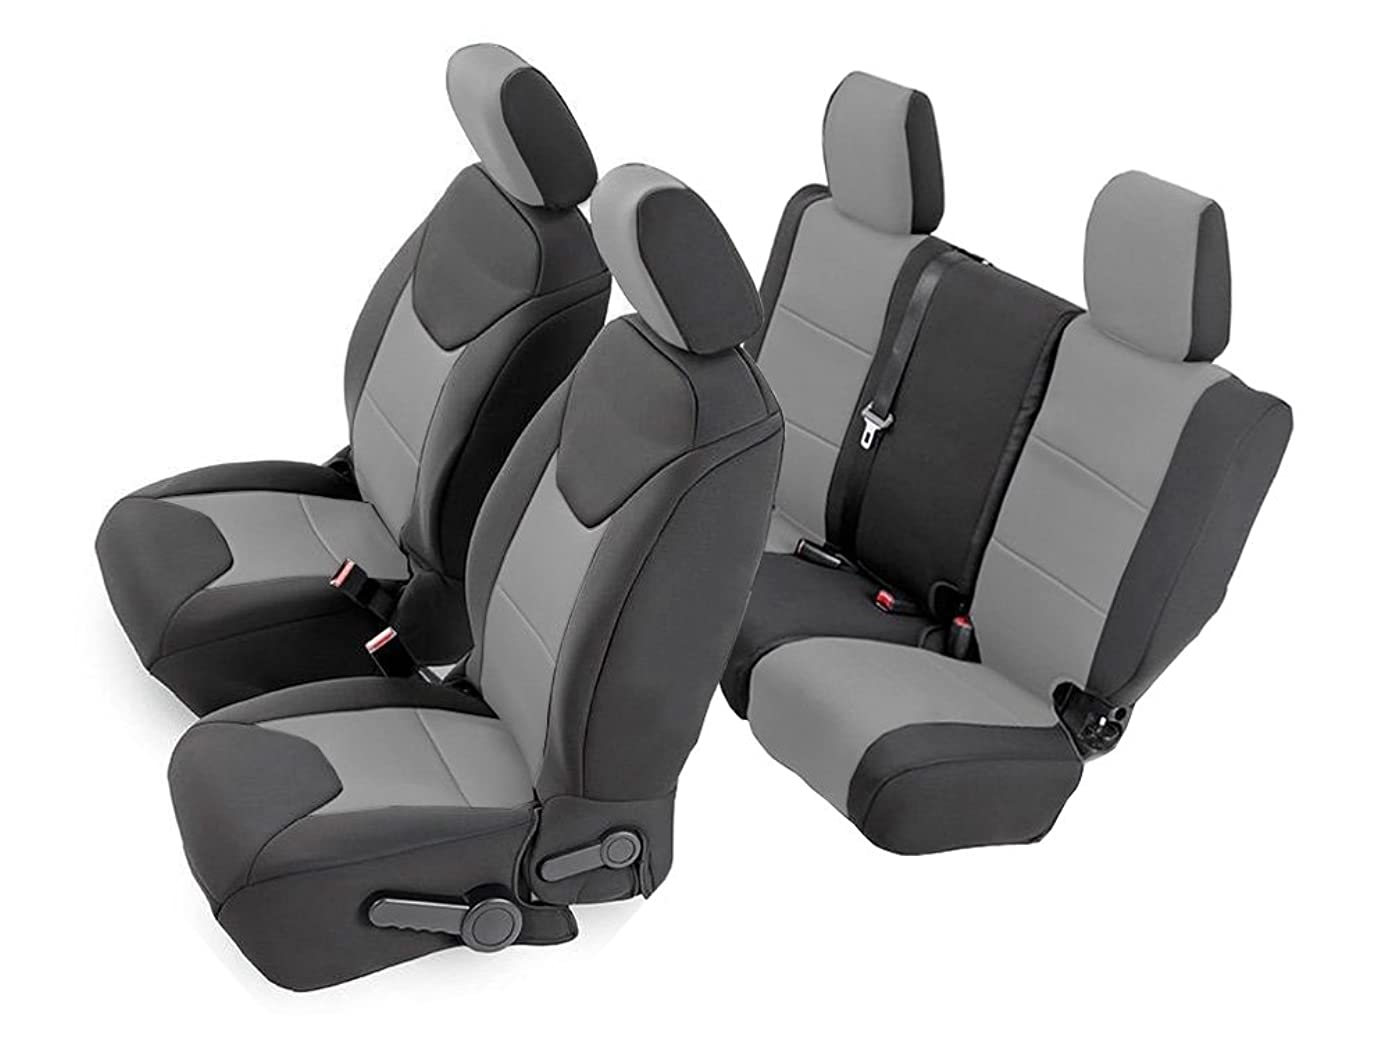 CarsCover Custom Fit 2011-2018 Jeep Wrangler Unlimited 4dr JK Neoprene Car SUV Wagon Front & Rear Seat Covers Gray & Black Sides Tailor Made Seat Cover